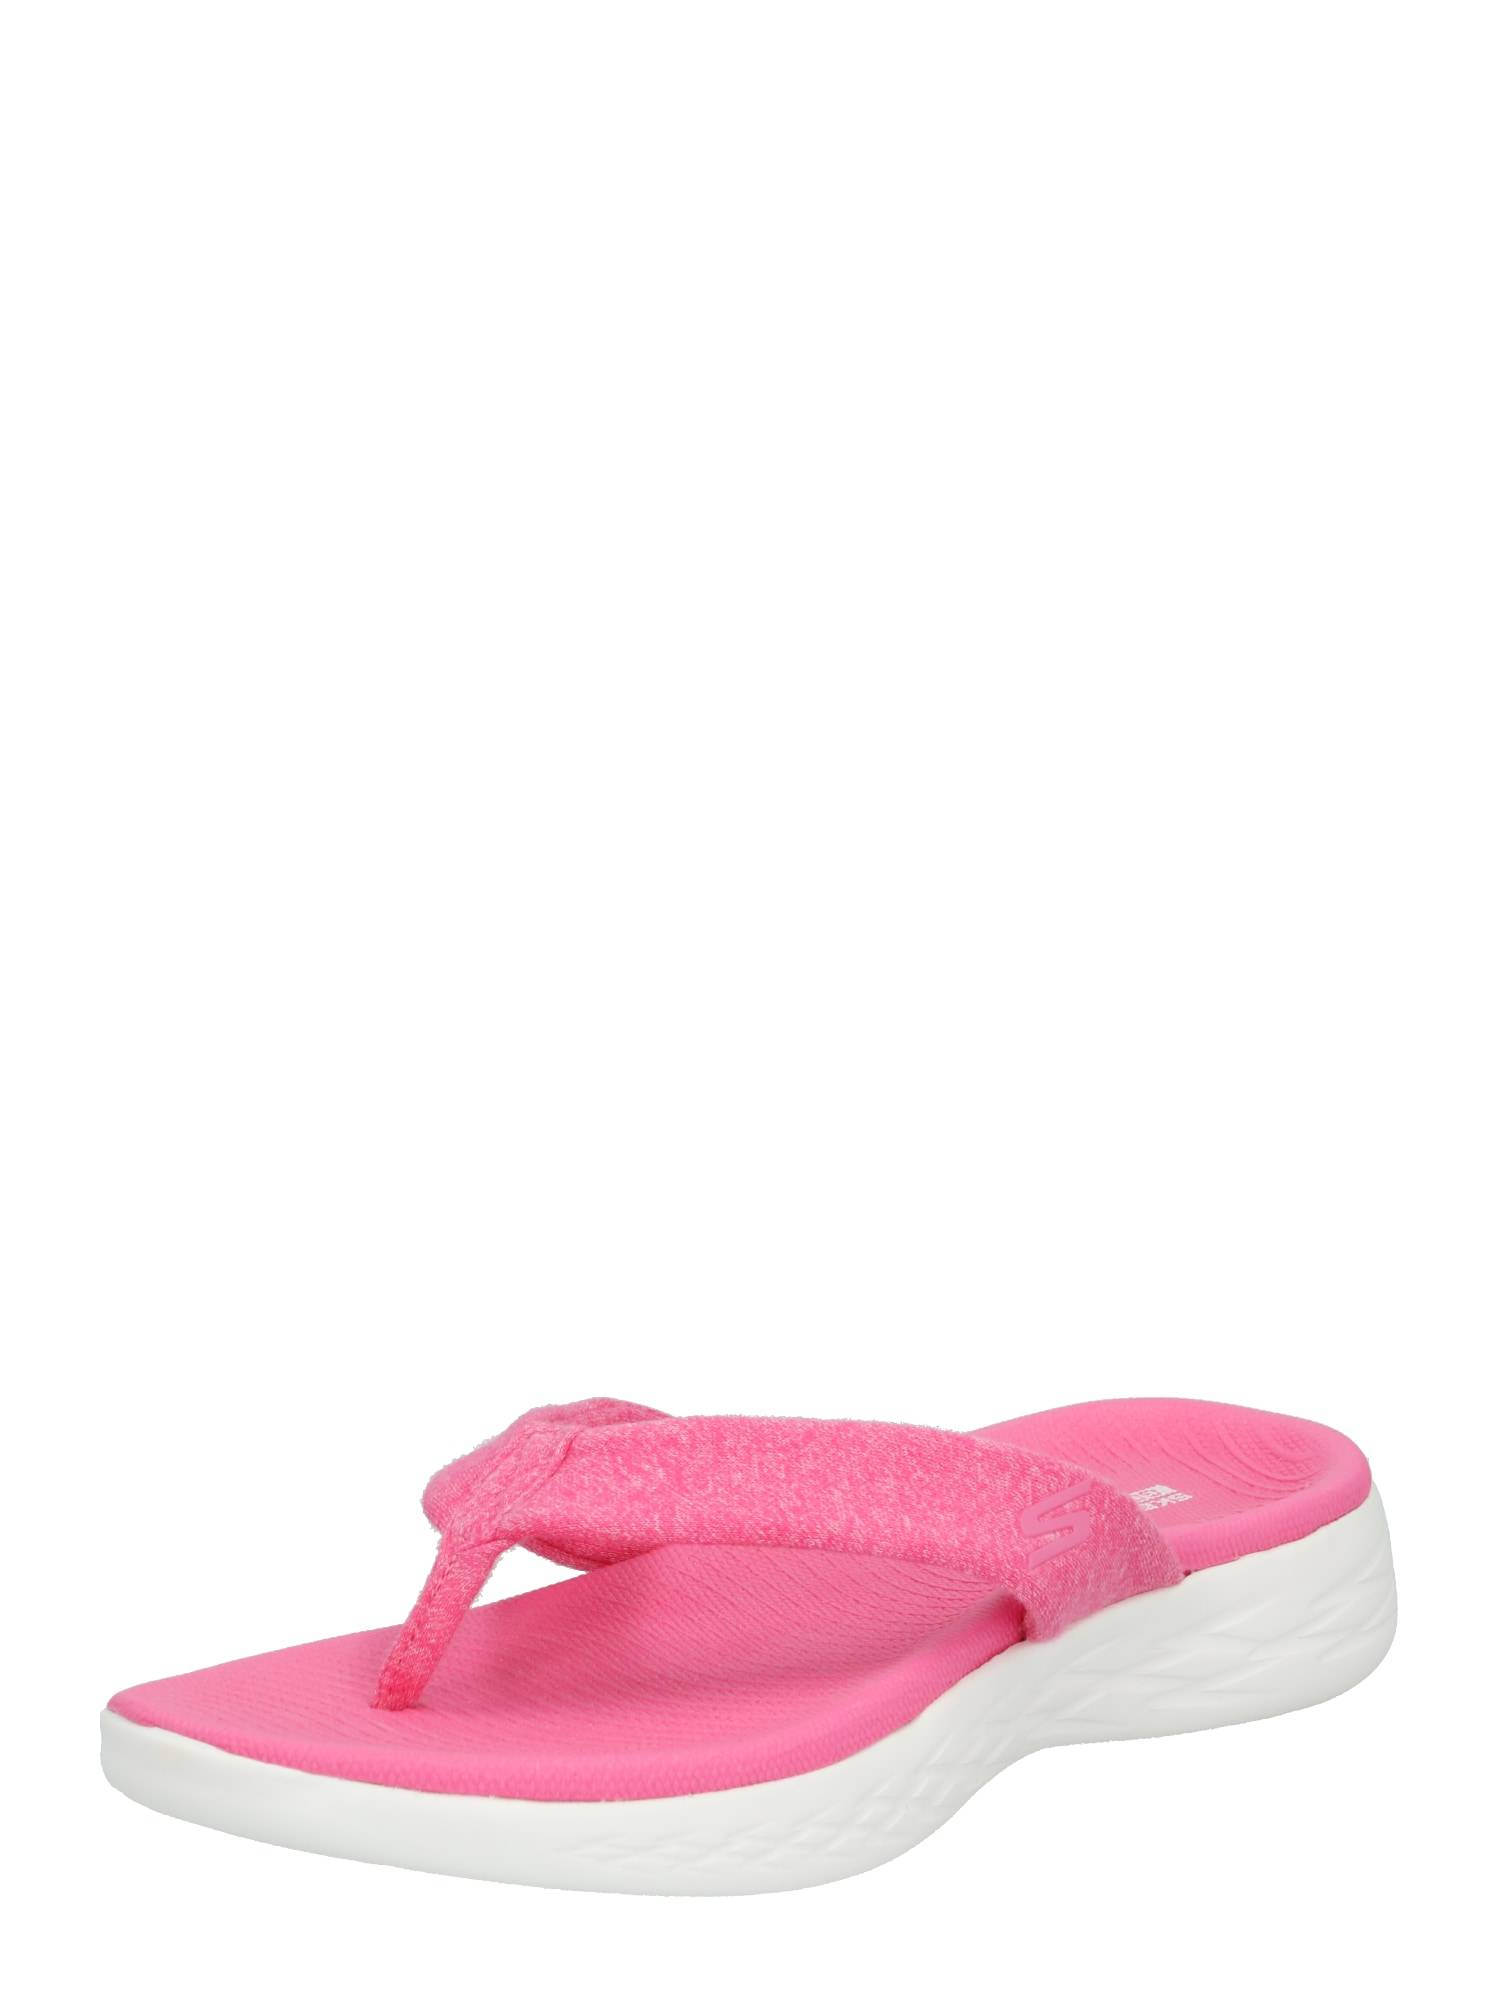 SKECHERS Séparateur d'orteils 'On-The -Go 600 Best Liked'  - Rose - Taille: 37 - female